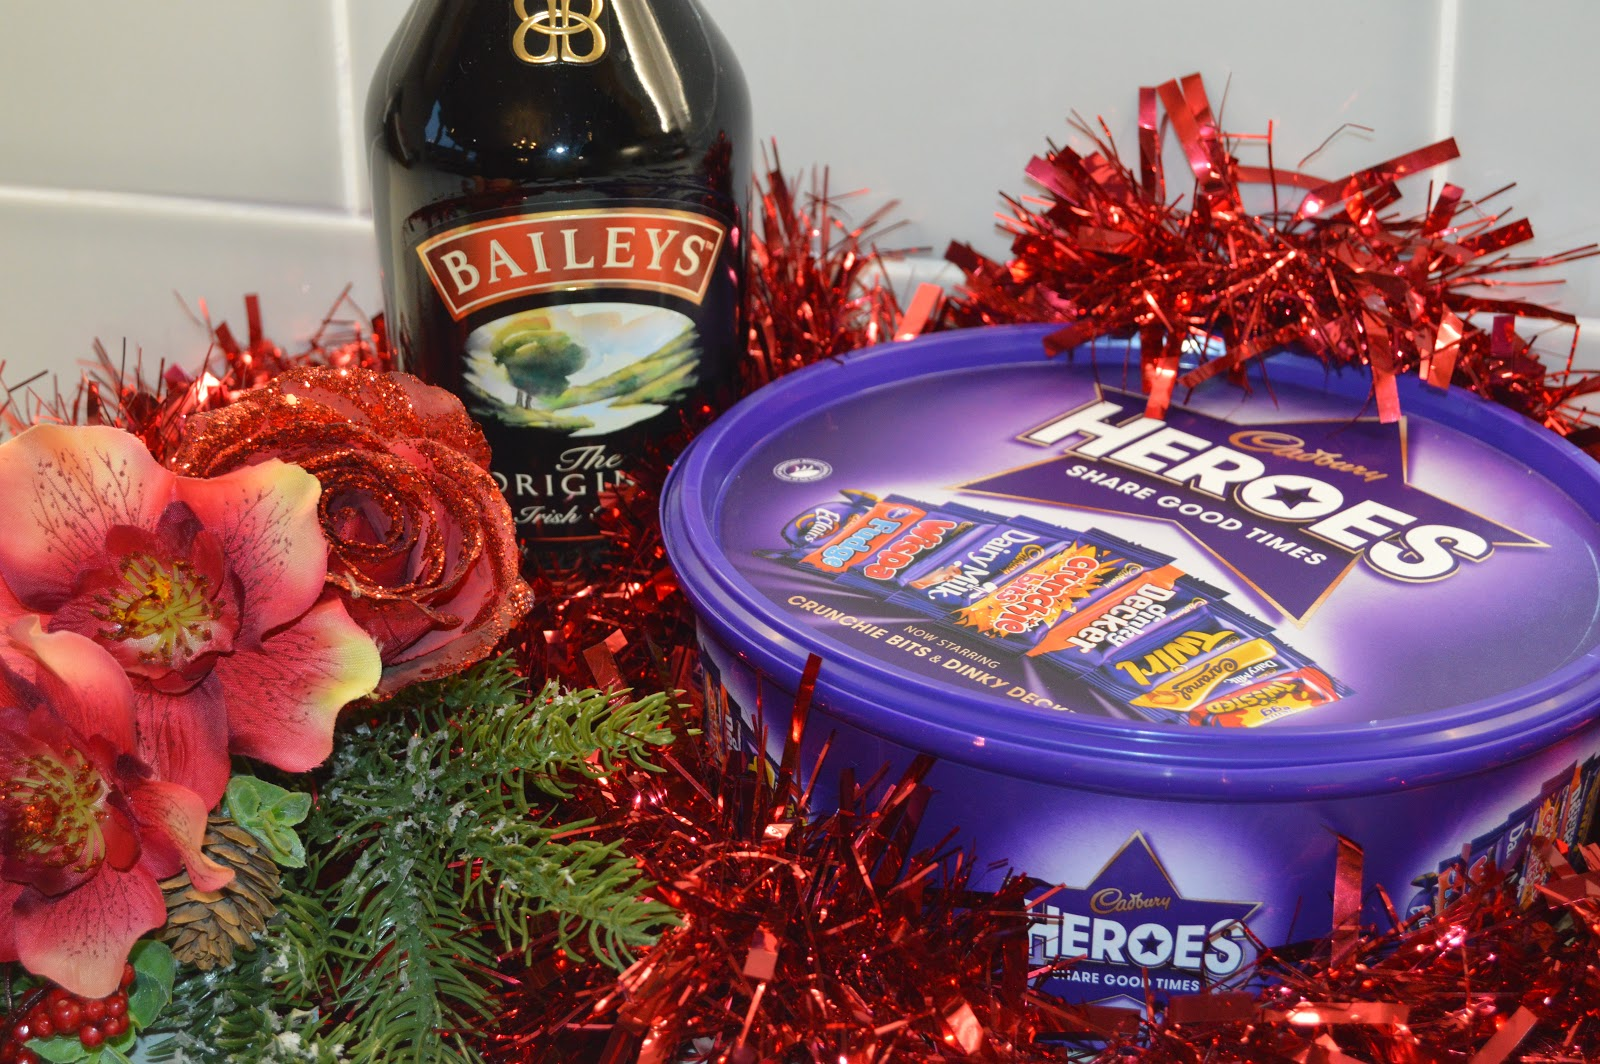 A bottle of baileys and chocolates